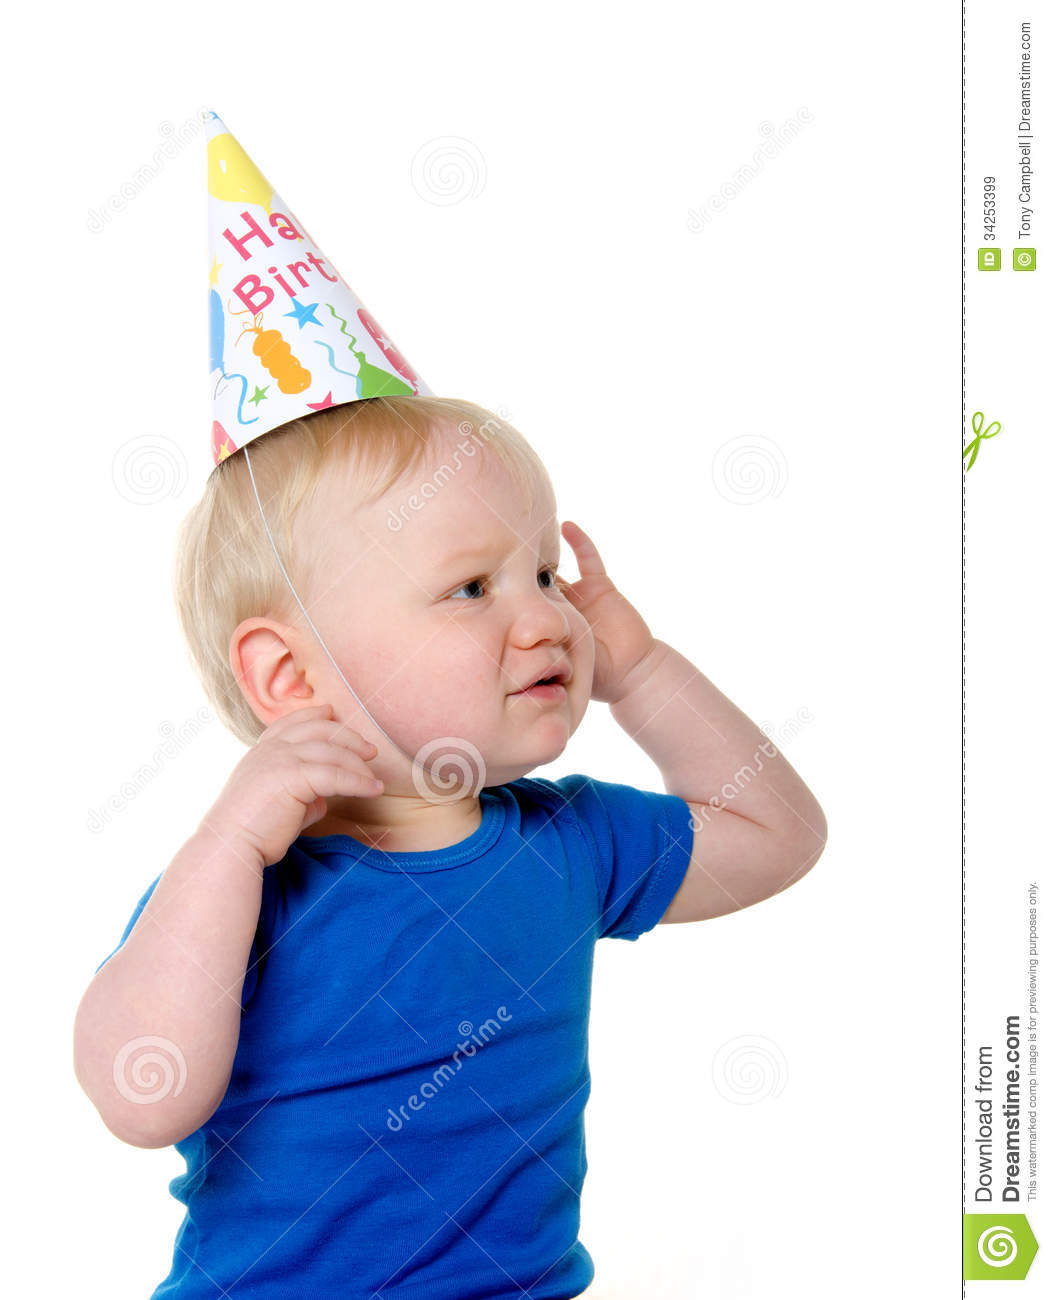 Unhappy birthday boy royalty free stock images image for Baby boy blue shirt